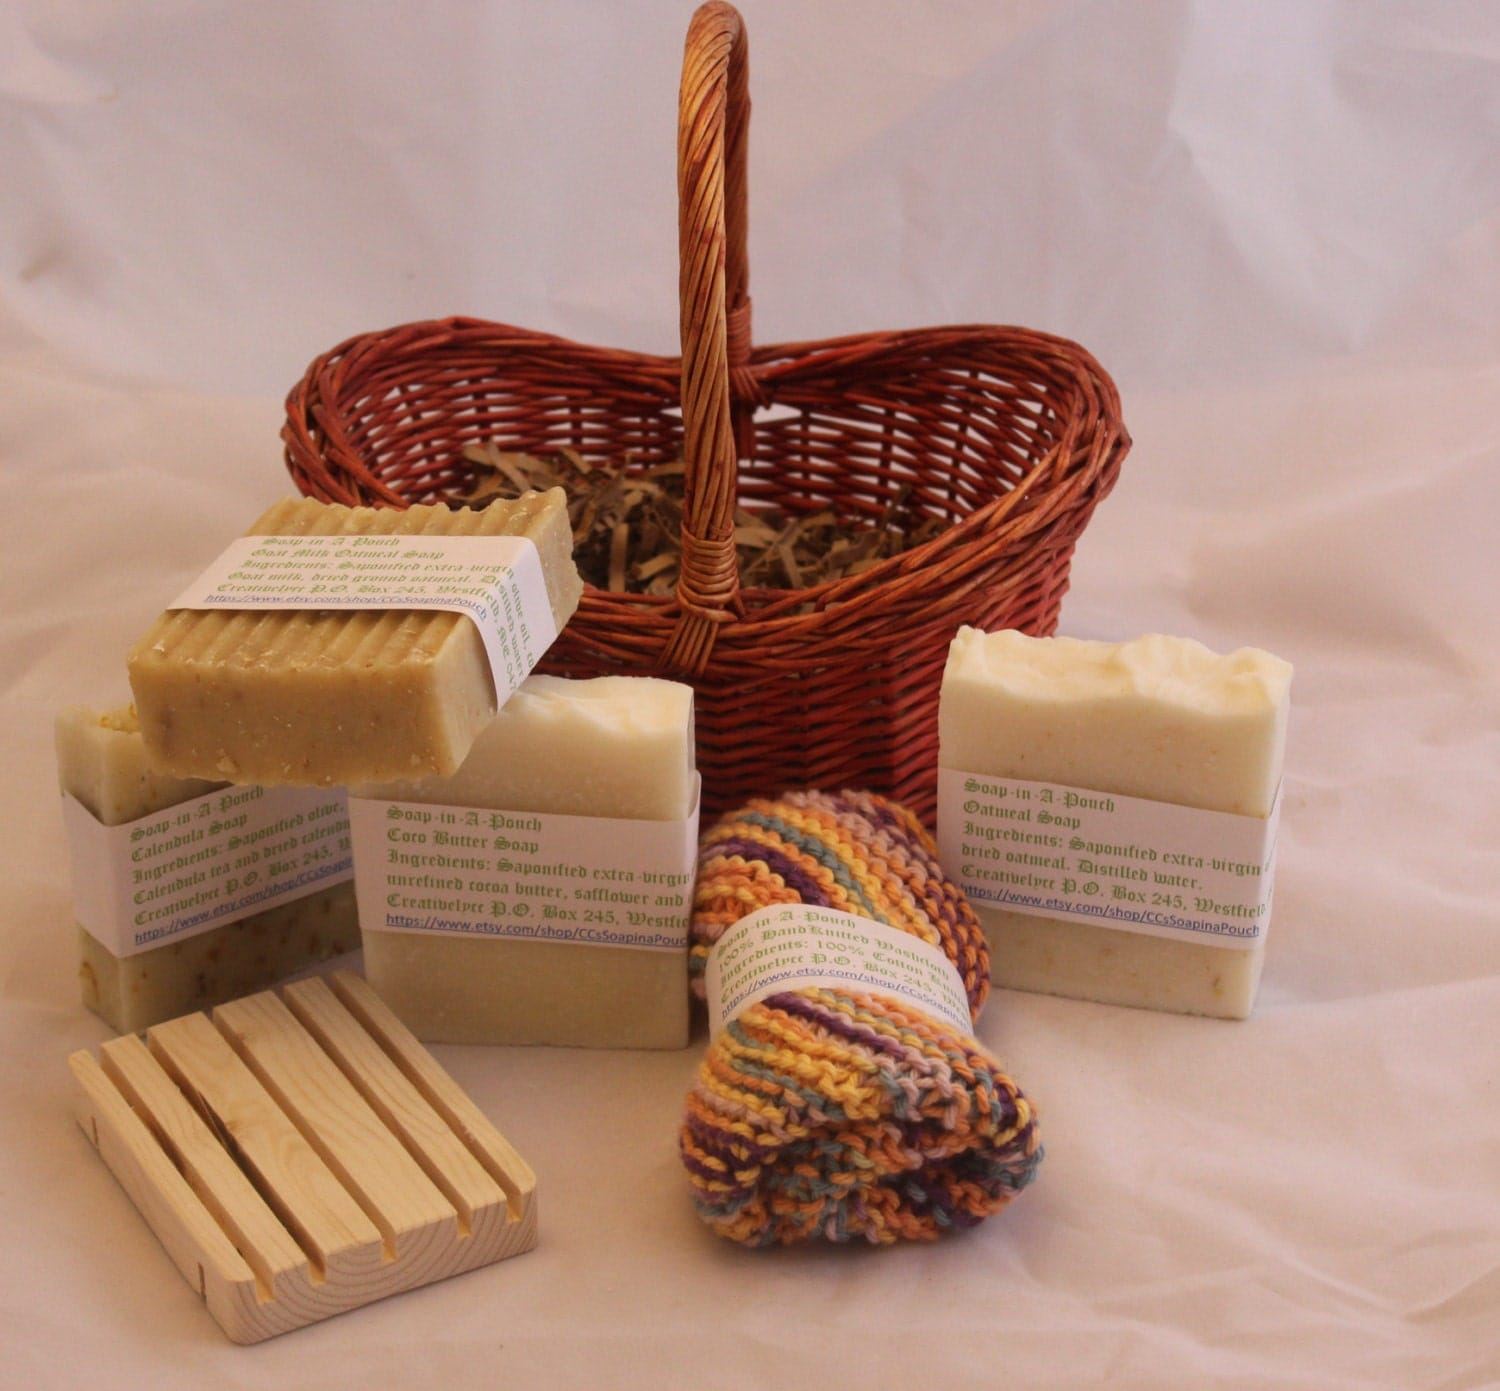 Handmade Basket Gifts : Handmade soap gift basket with hand knitted washcloth